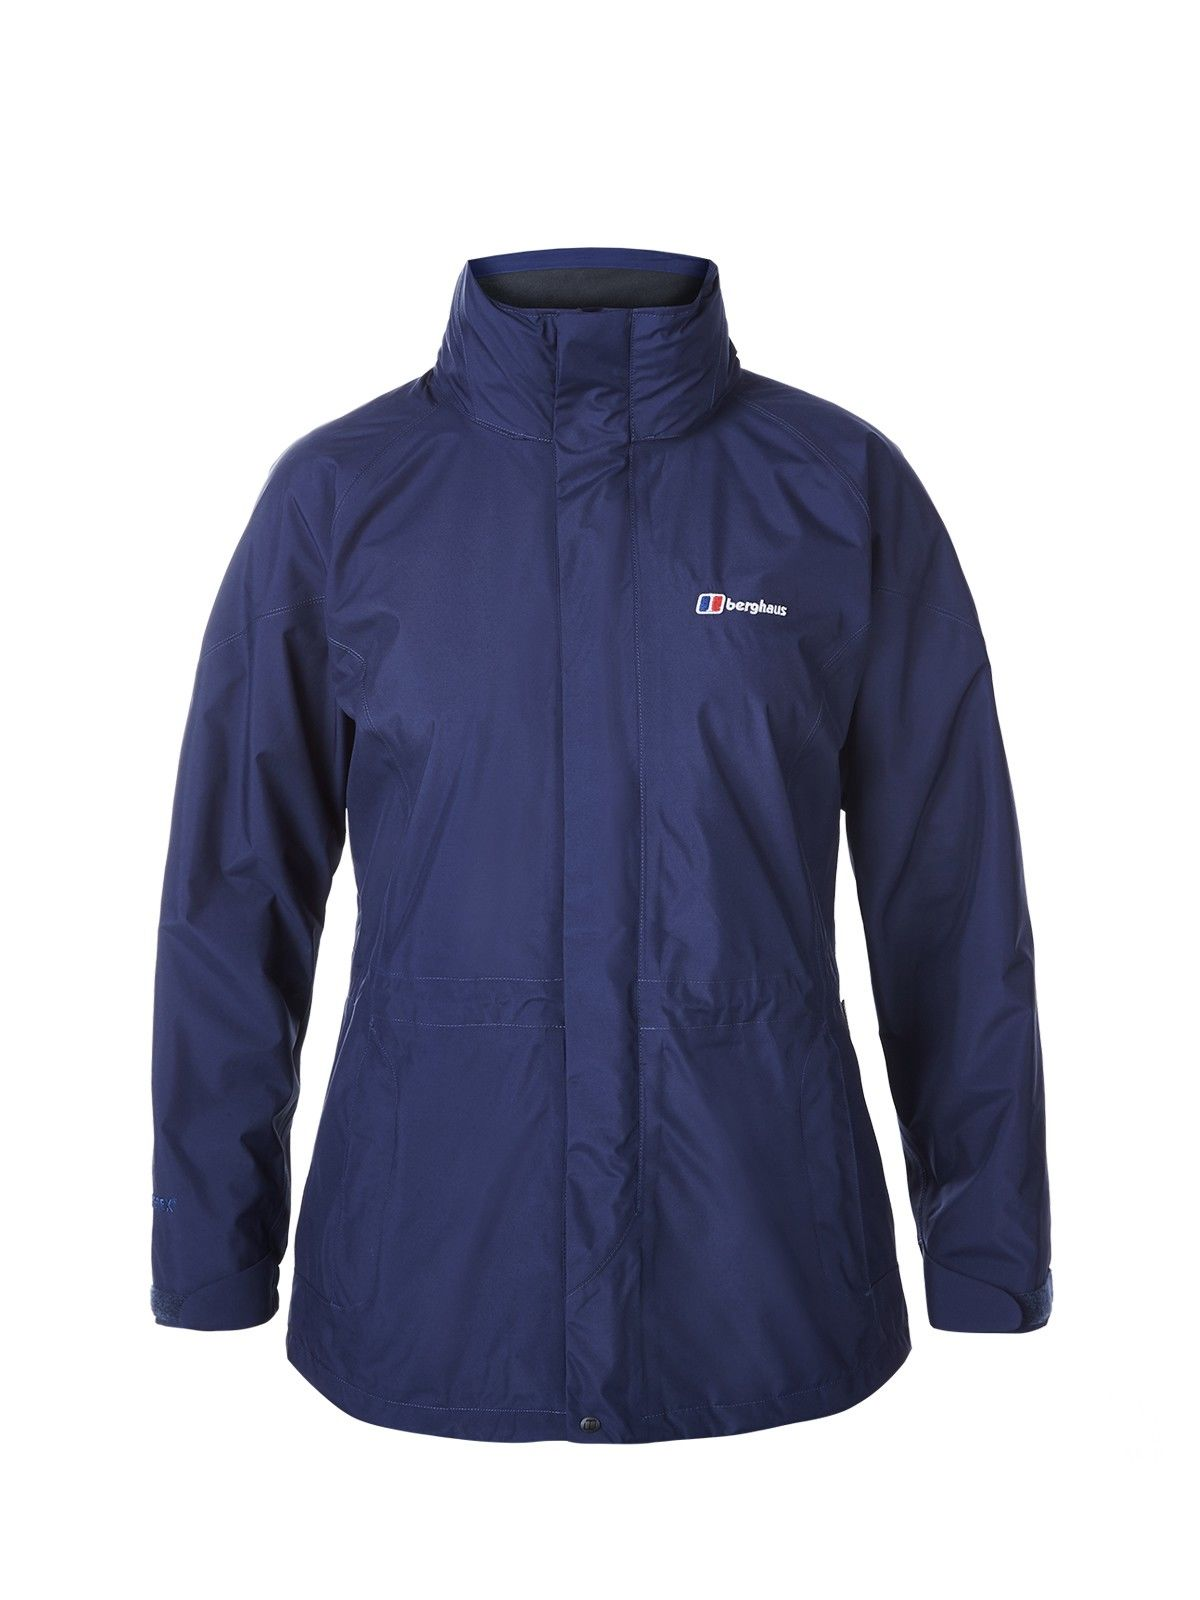 Berghaus Glissade Jacket IA Blau, Female Gore-Tex® Isolationsjacke, XL -16